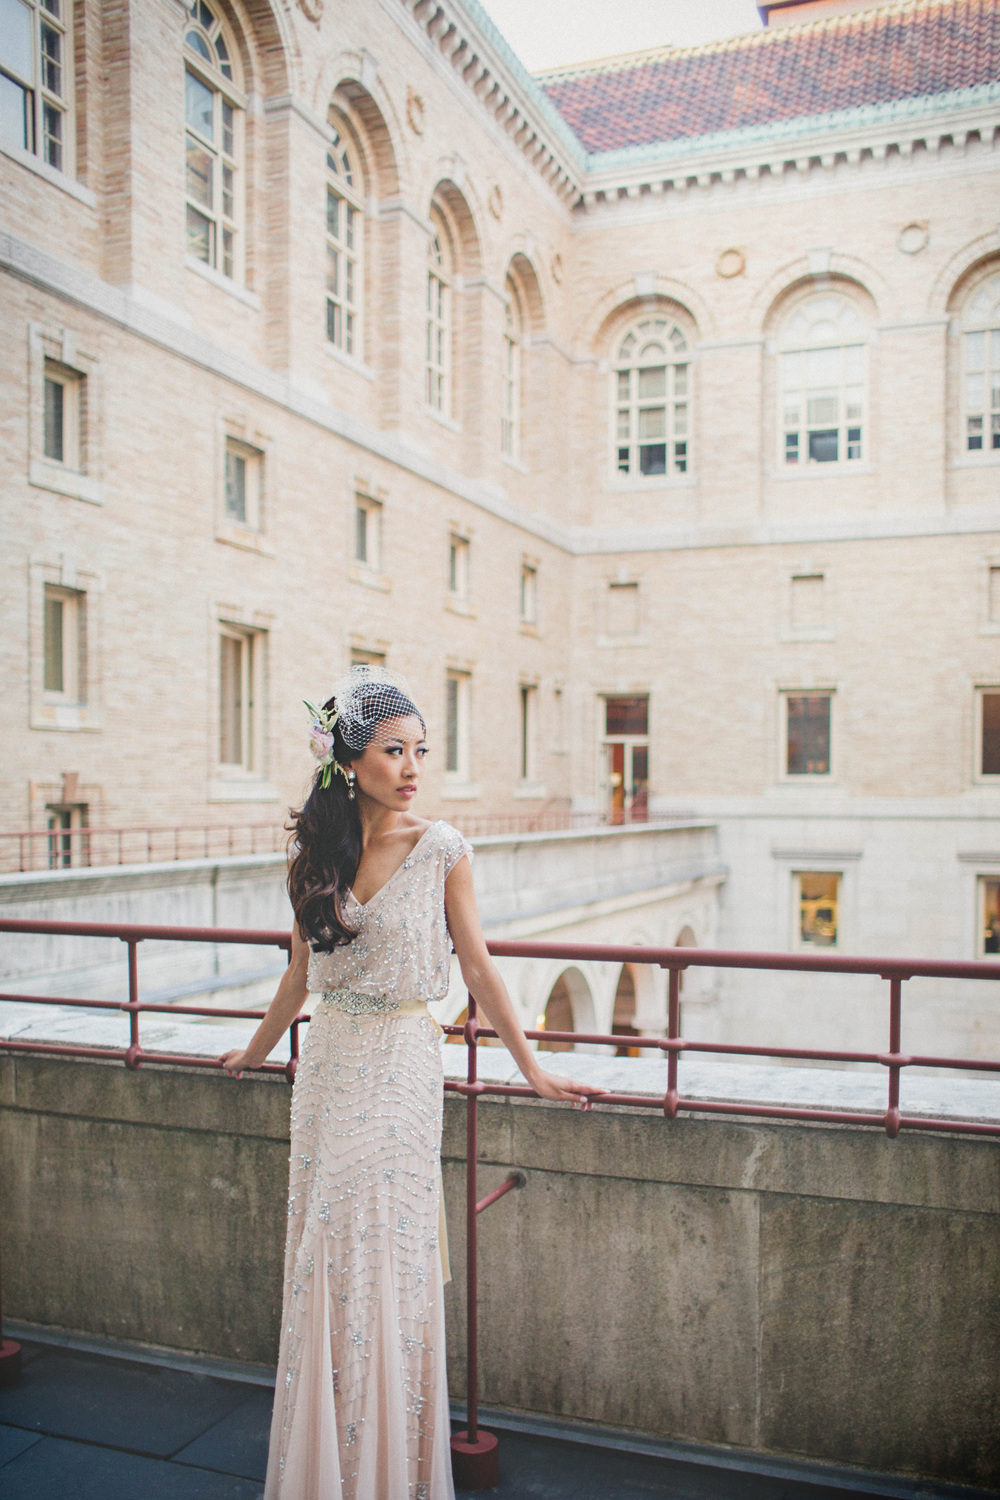 BRIDES MAGAZINE: BLOGGER EXTRAPETITE'S PUBLIC LIBRARY WEDDING WITH KATCH STUDIOS PHOTOGRAPHY